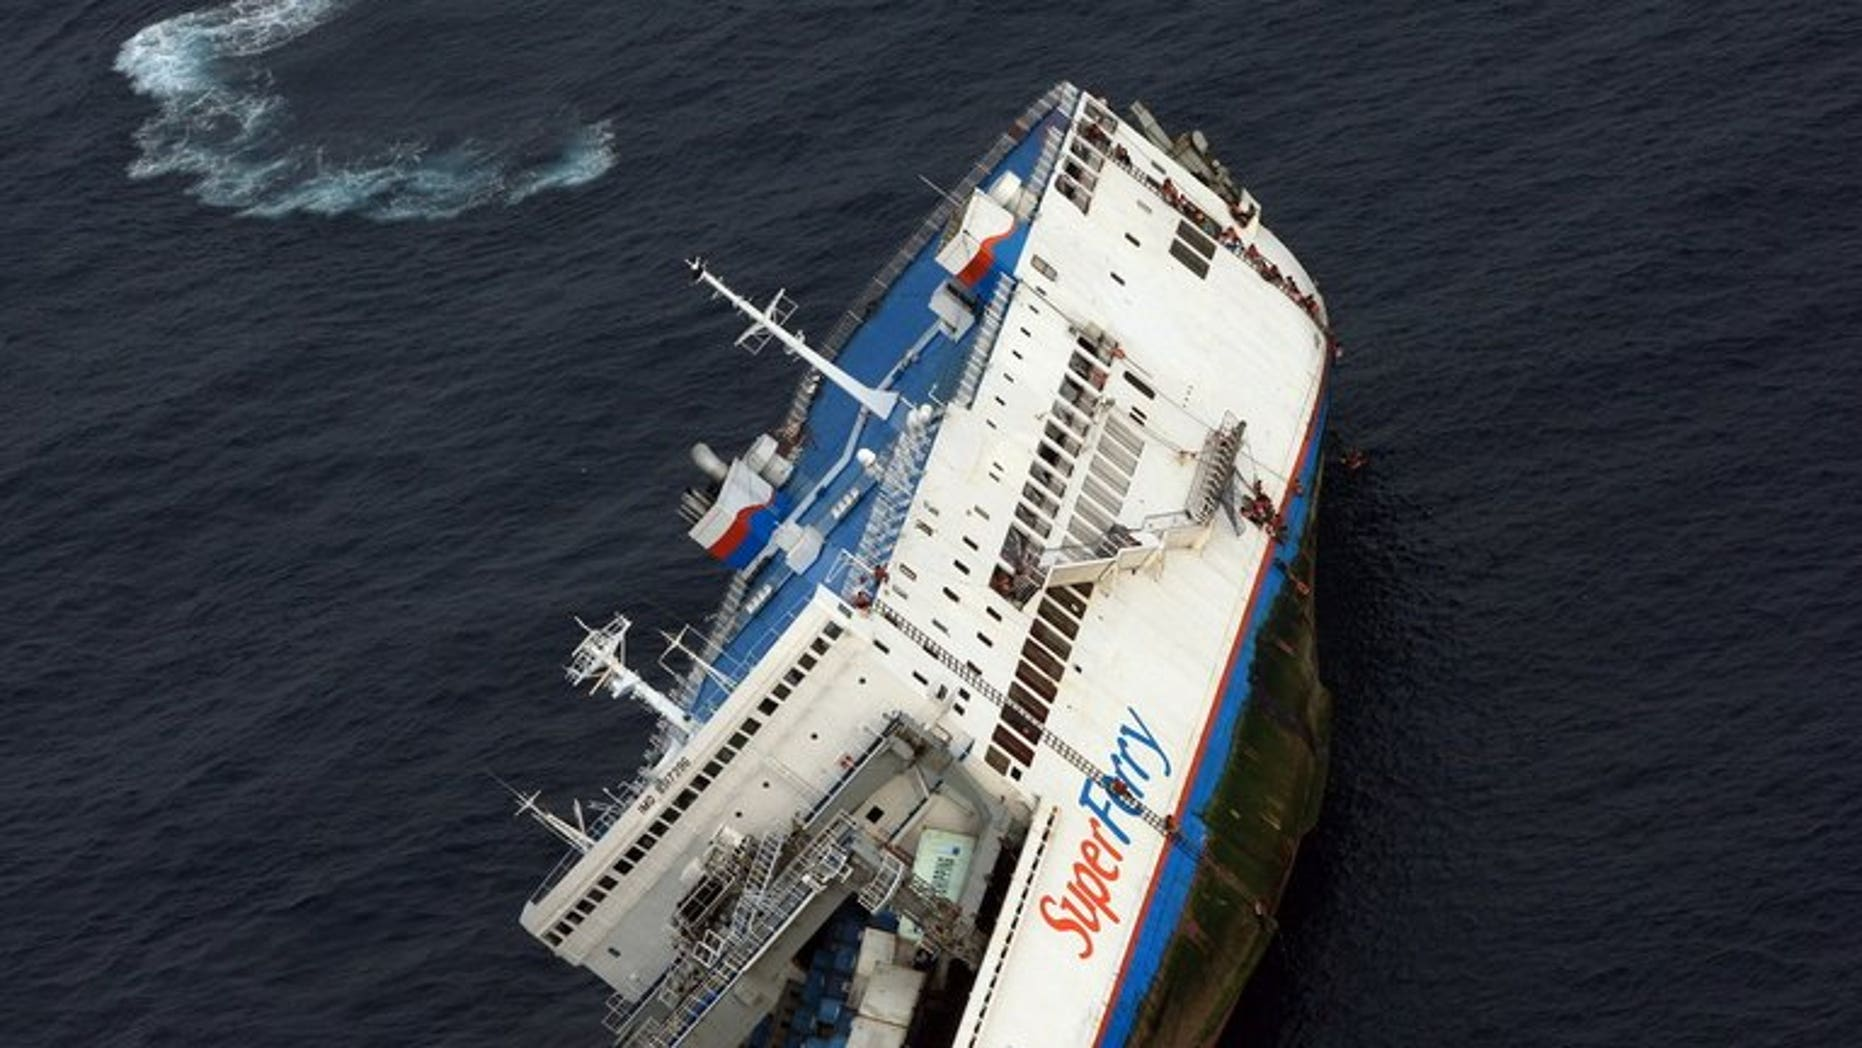 File picture of Superferry 9 listing off Zamboanga peninsular in September 2009. The Philippines coastguard launched a rescue mission Friday night after a ferry carrying almost 700 people collided with a cargo ship off the central city of Cebu, officials said.